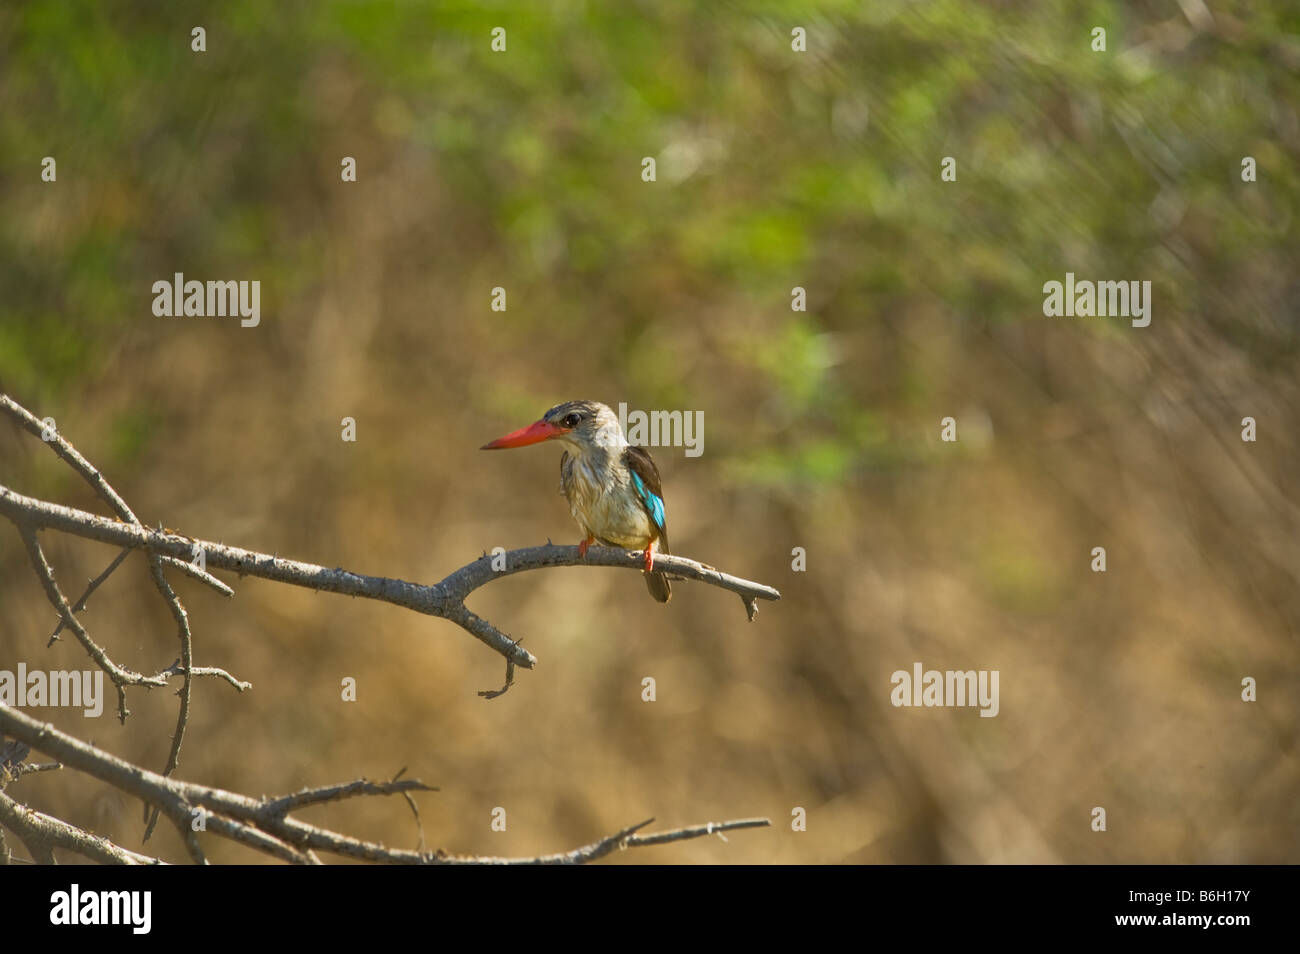 Brown-hooded kingfisher Halcyon albiventris bird Halcyonidae Southern Africa sitting on branch plain background - Stock Image